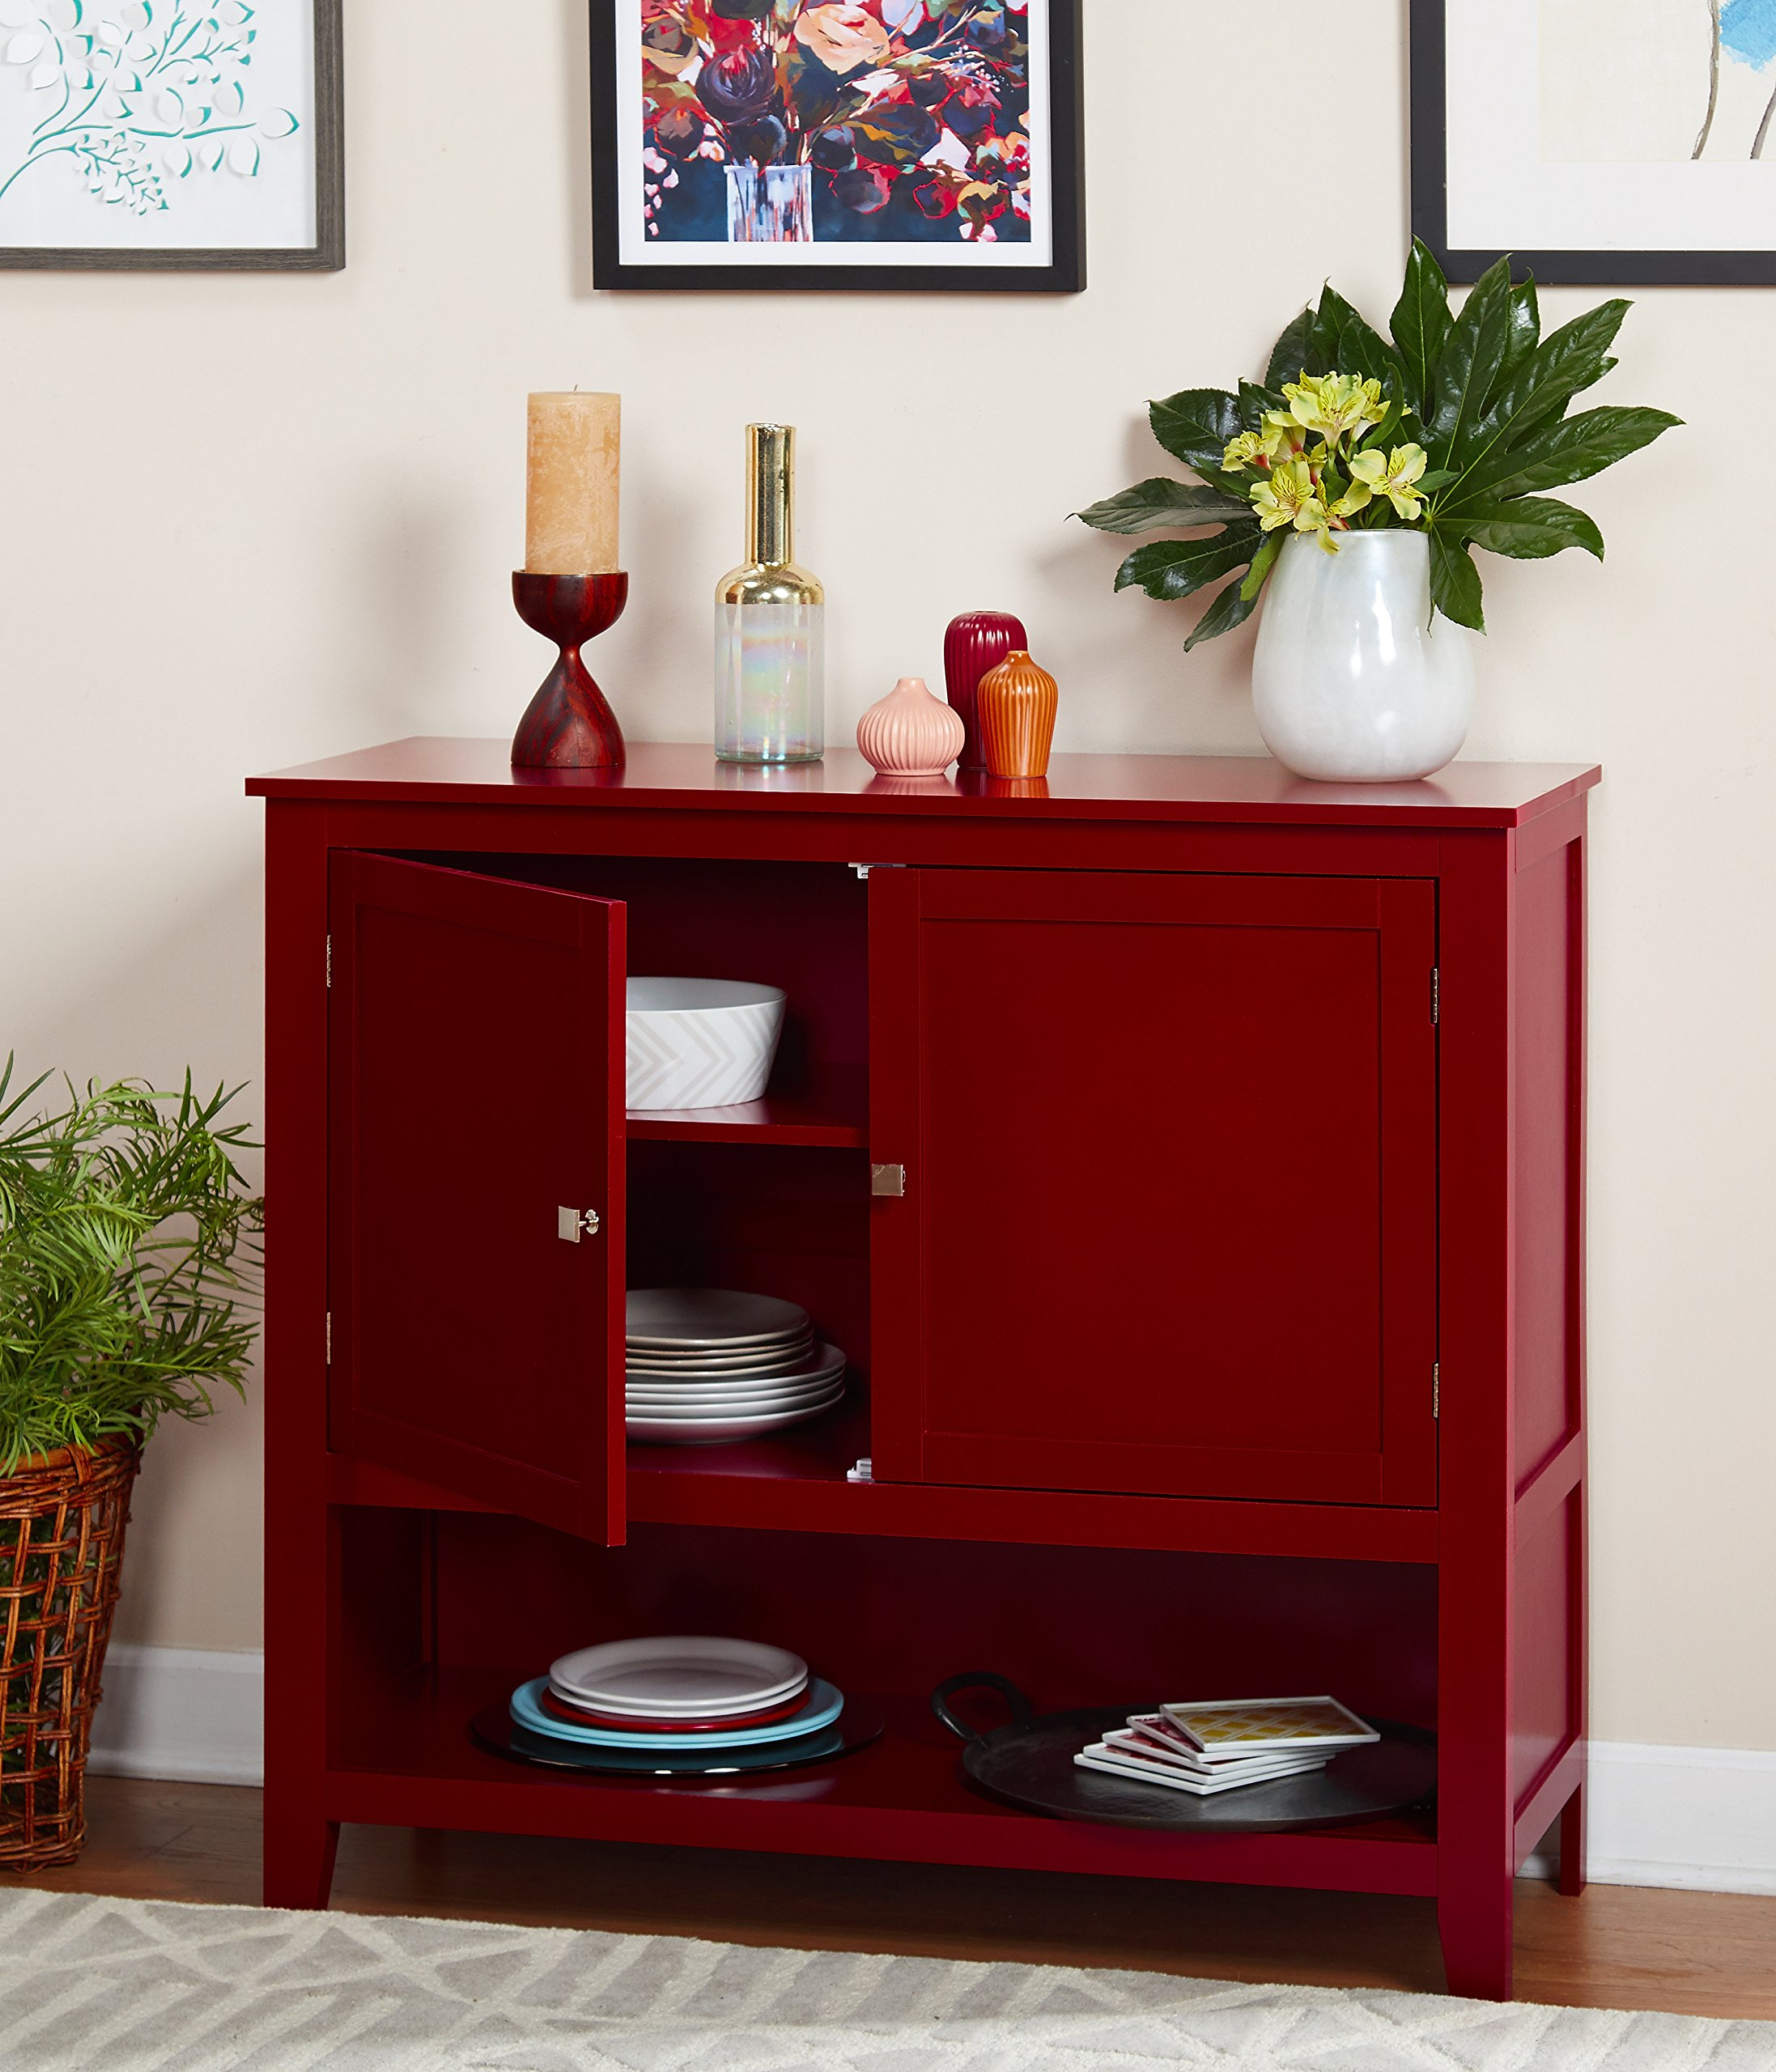 Target Marketing Systems 11001RED Montego Collection Buffet Cabinet, Red by Target Marketing Systems (Image #3)